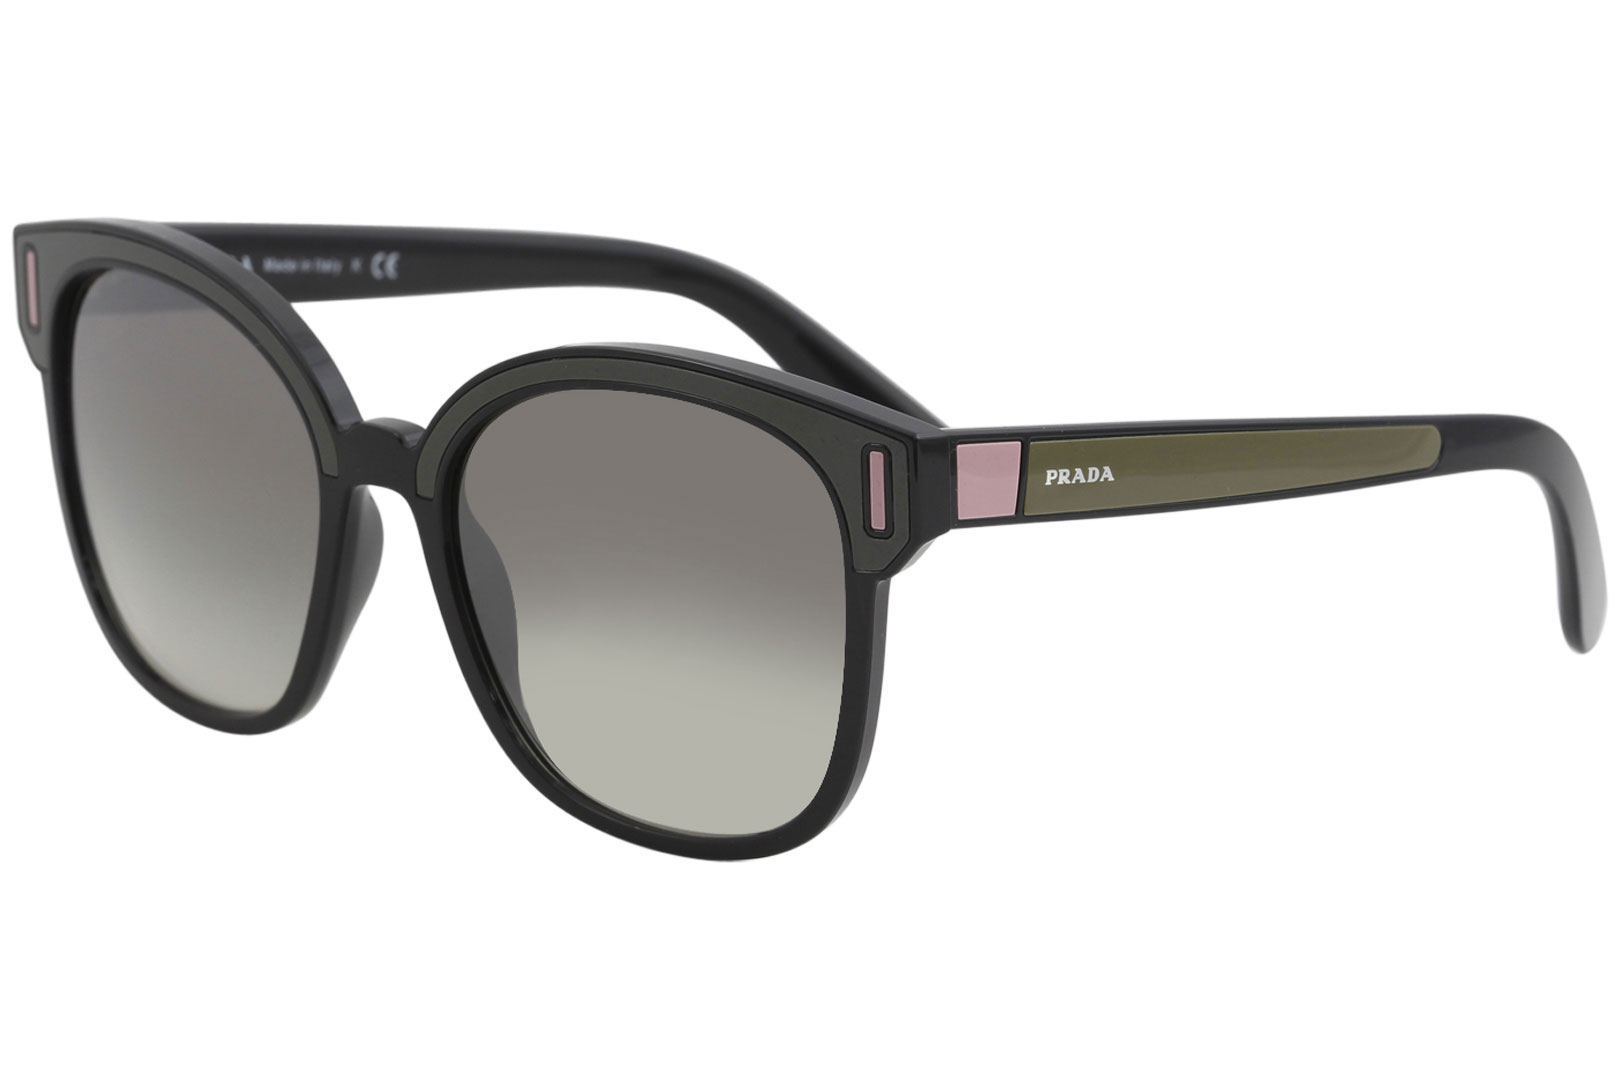 a02583f3bd56 Prada Women s SPR05U SPR 05U SVK 5O0 Black Brown Pink Square ...